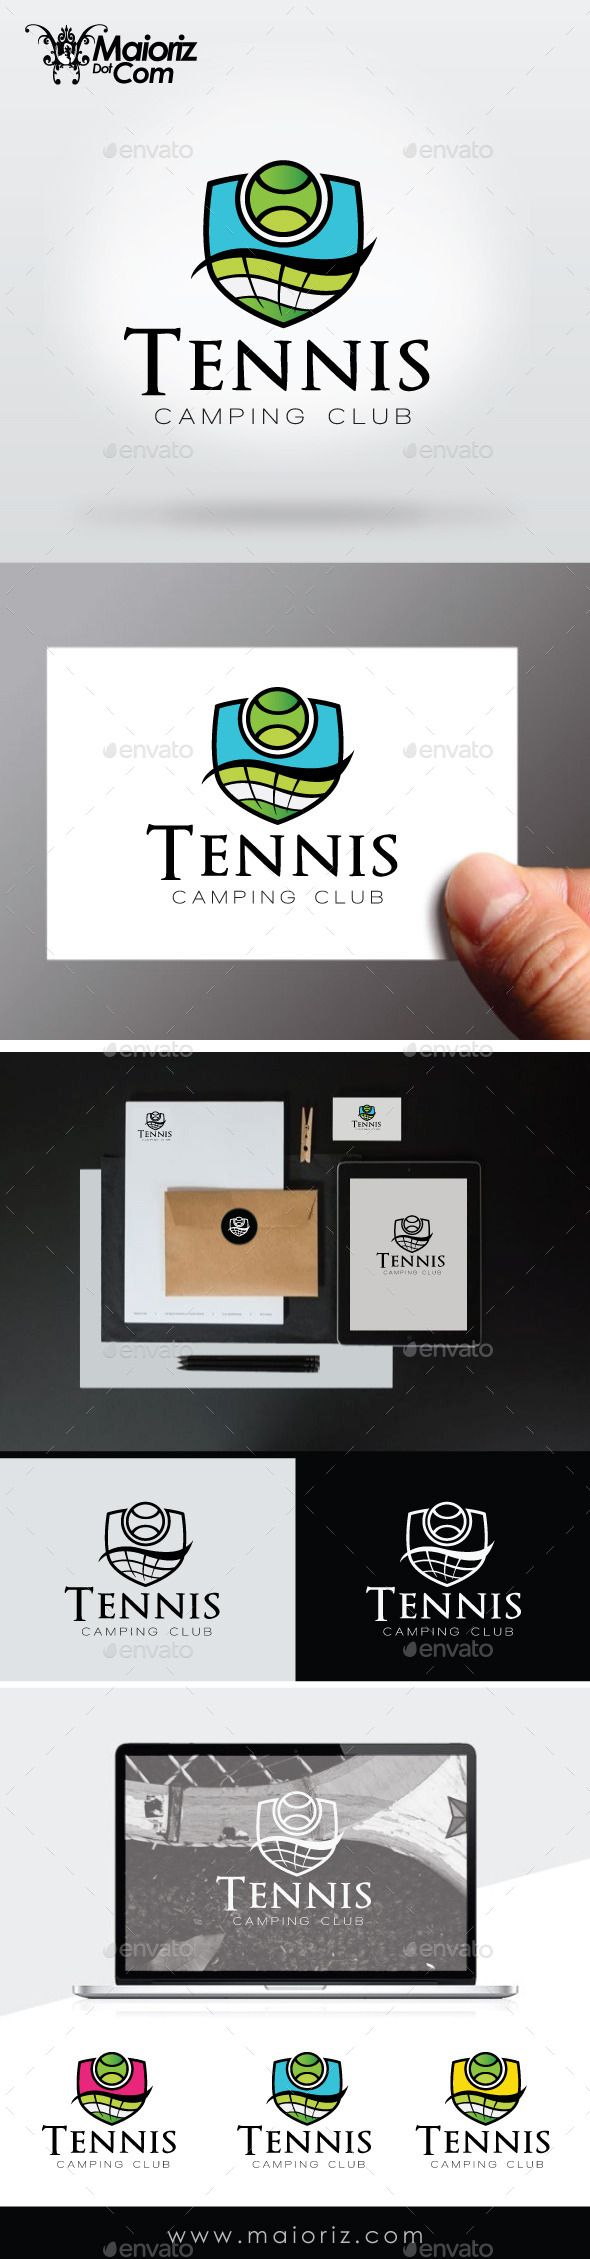 Tennis Club Logo Template — Vector EPS #fit #school • Available here → https://graphicriver.net/item/tennis-club-logo-template/9368397?ref=pxcr